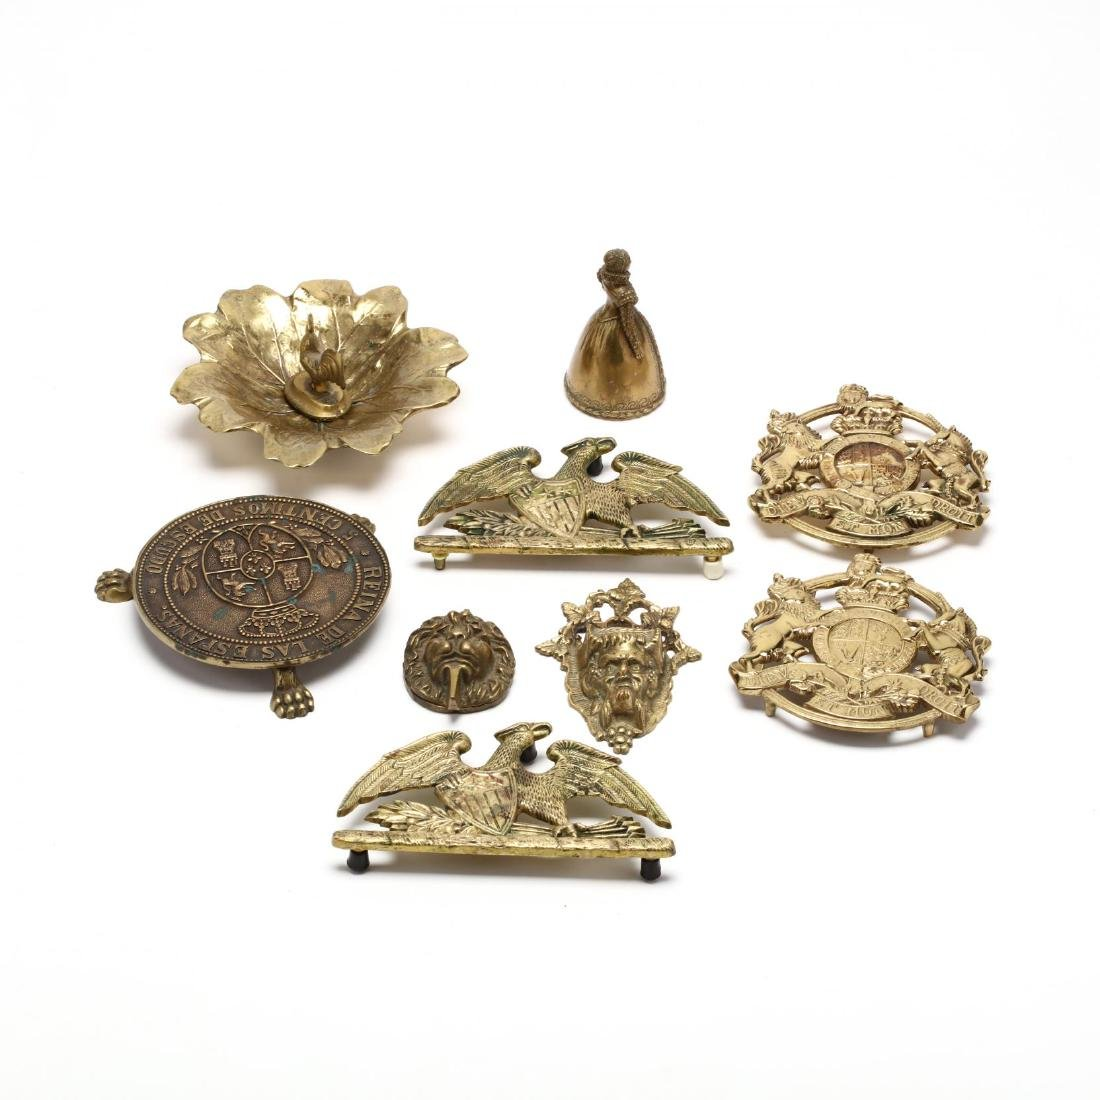 Group of Brass Accessories incl. Virginia Metalcrafters